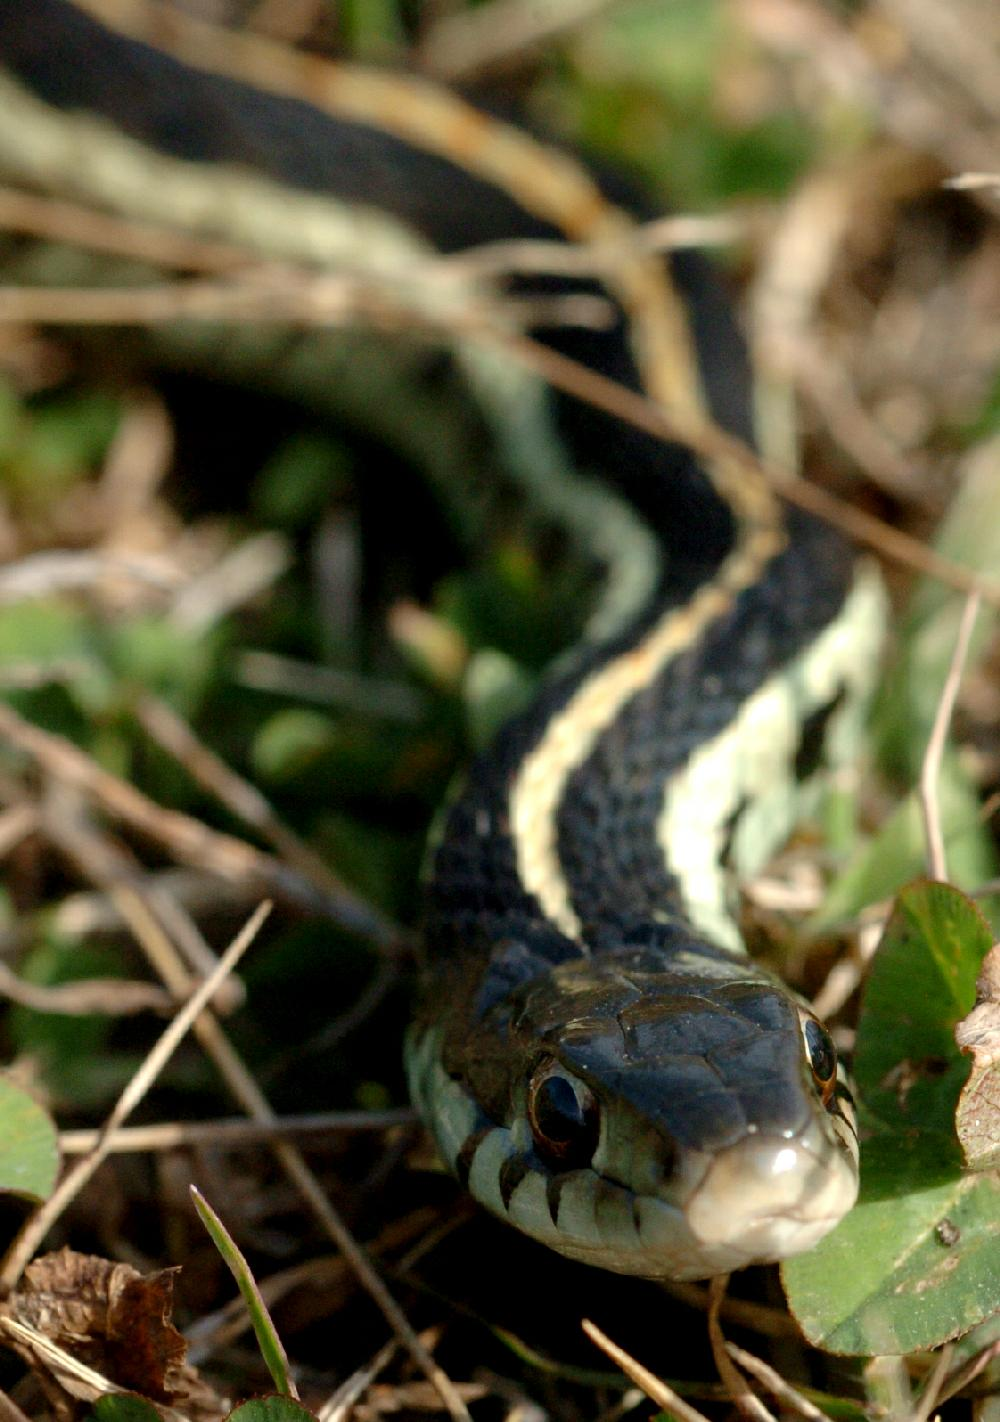 sssinuous friends snakes help humans by devouring disease